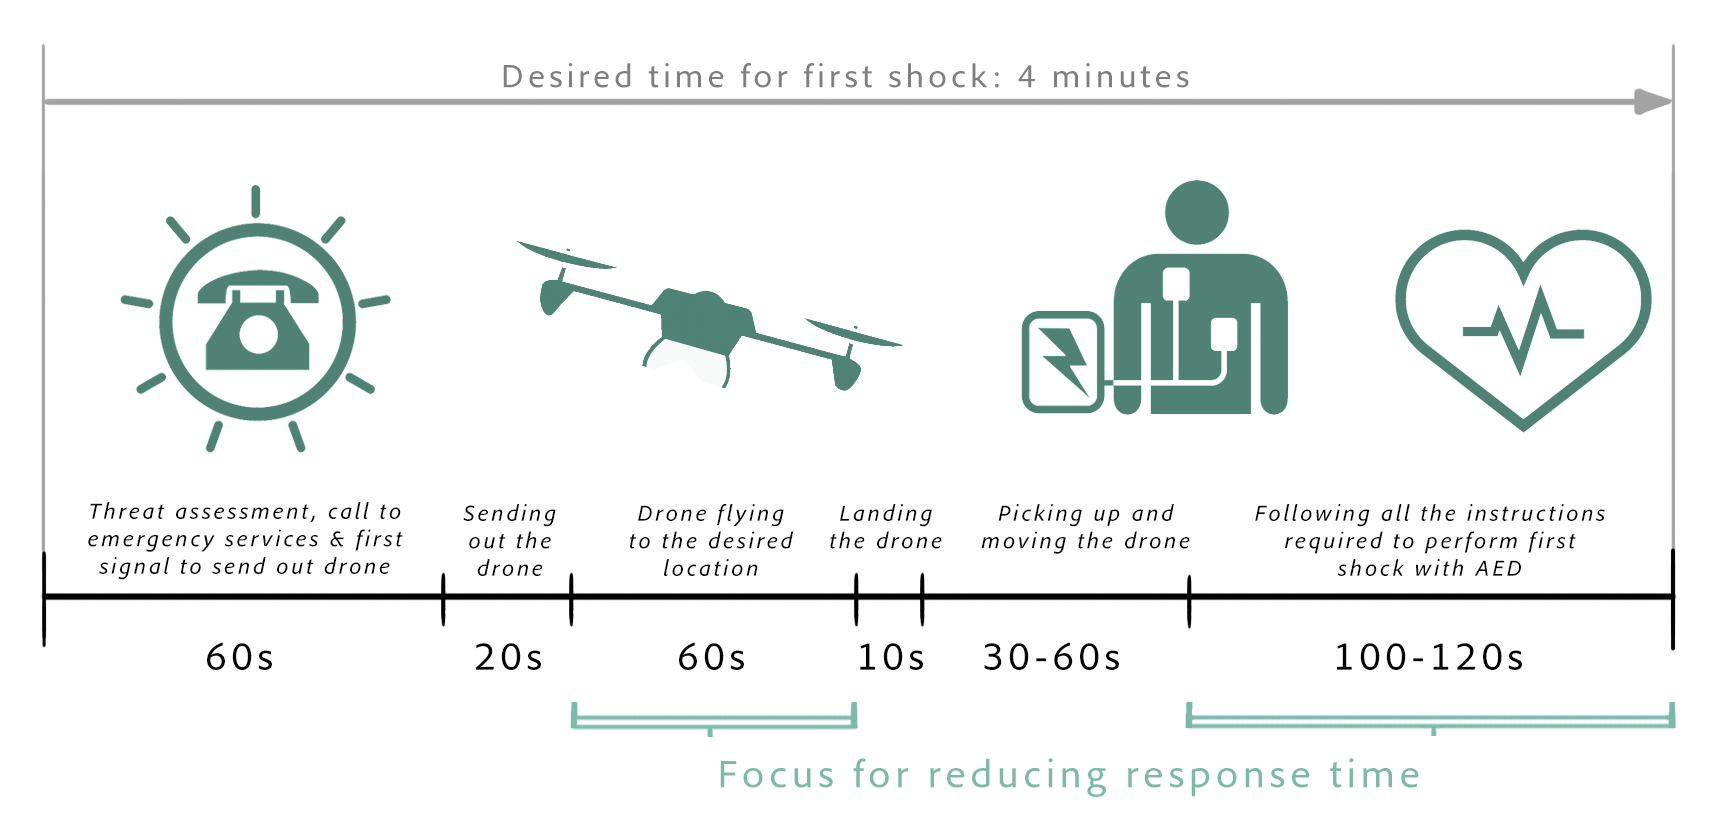 Focus of the project: reducing response time by increasing the drone's usability and reduce flying time.